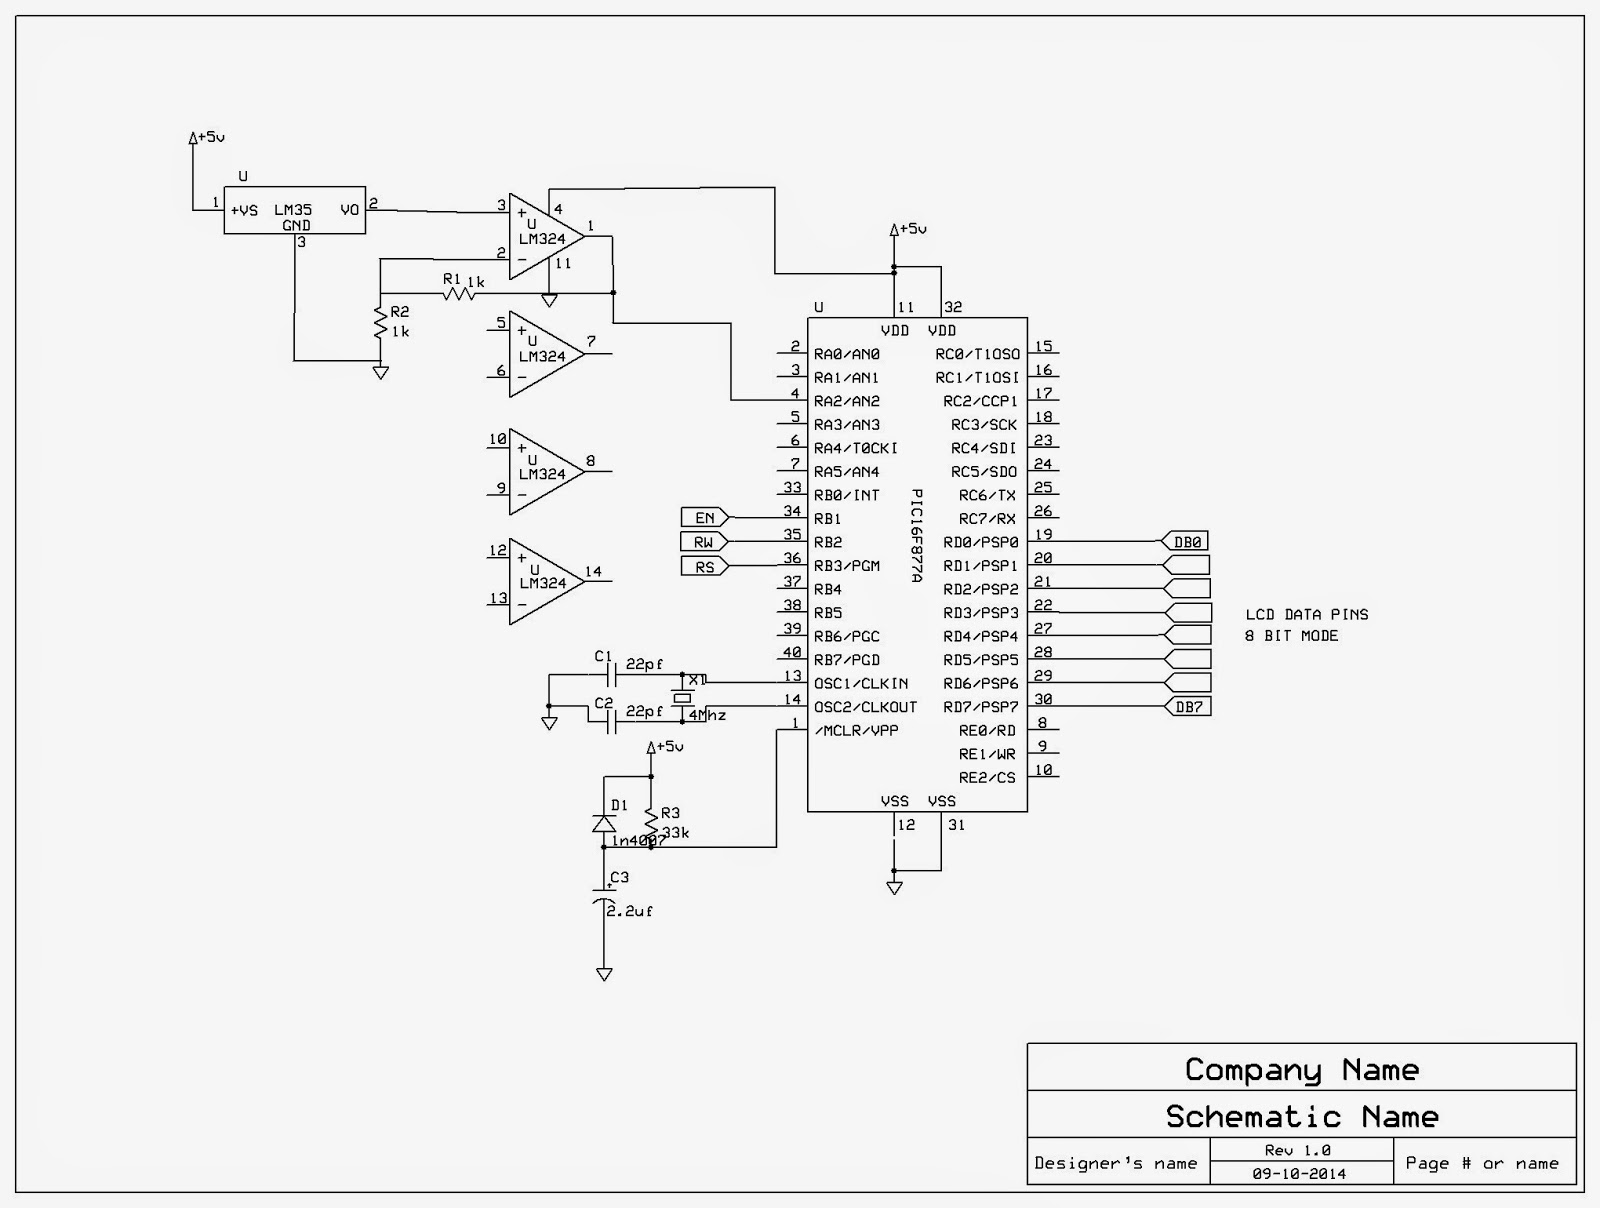 Pic Interface With Lm35 Pic16f877a Projects Digital Thermometer Circuit Diagram The Hitech C Program For Is As Given Below Explanation Of Can Be Found From Line Comments